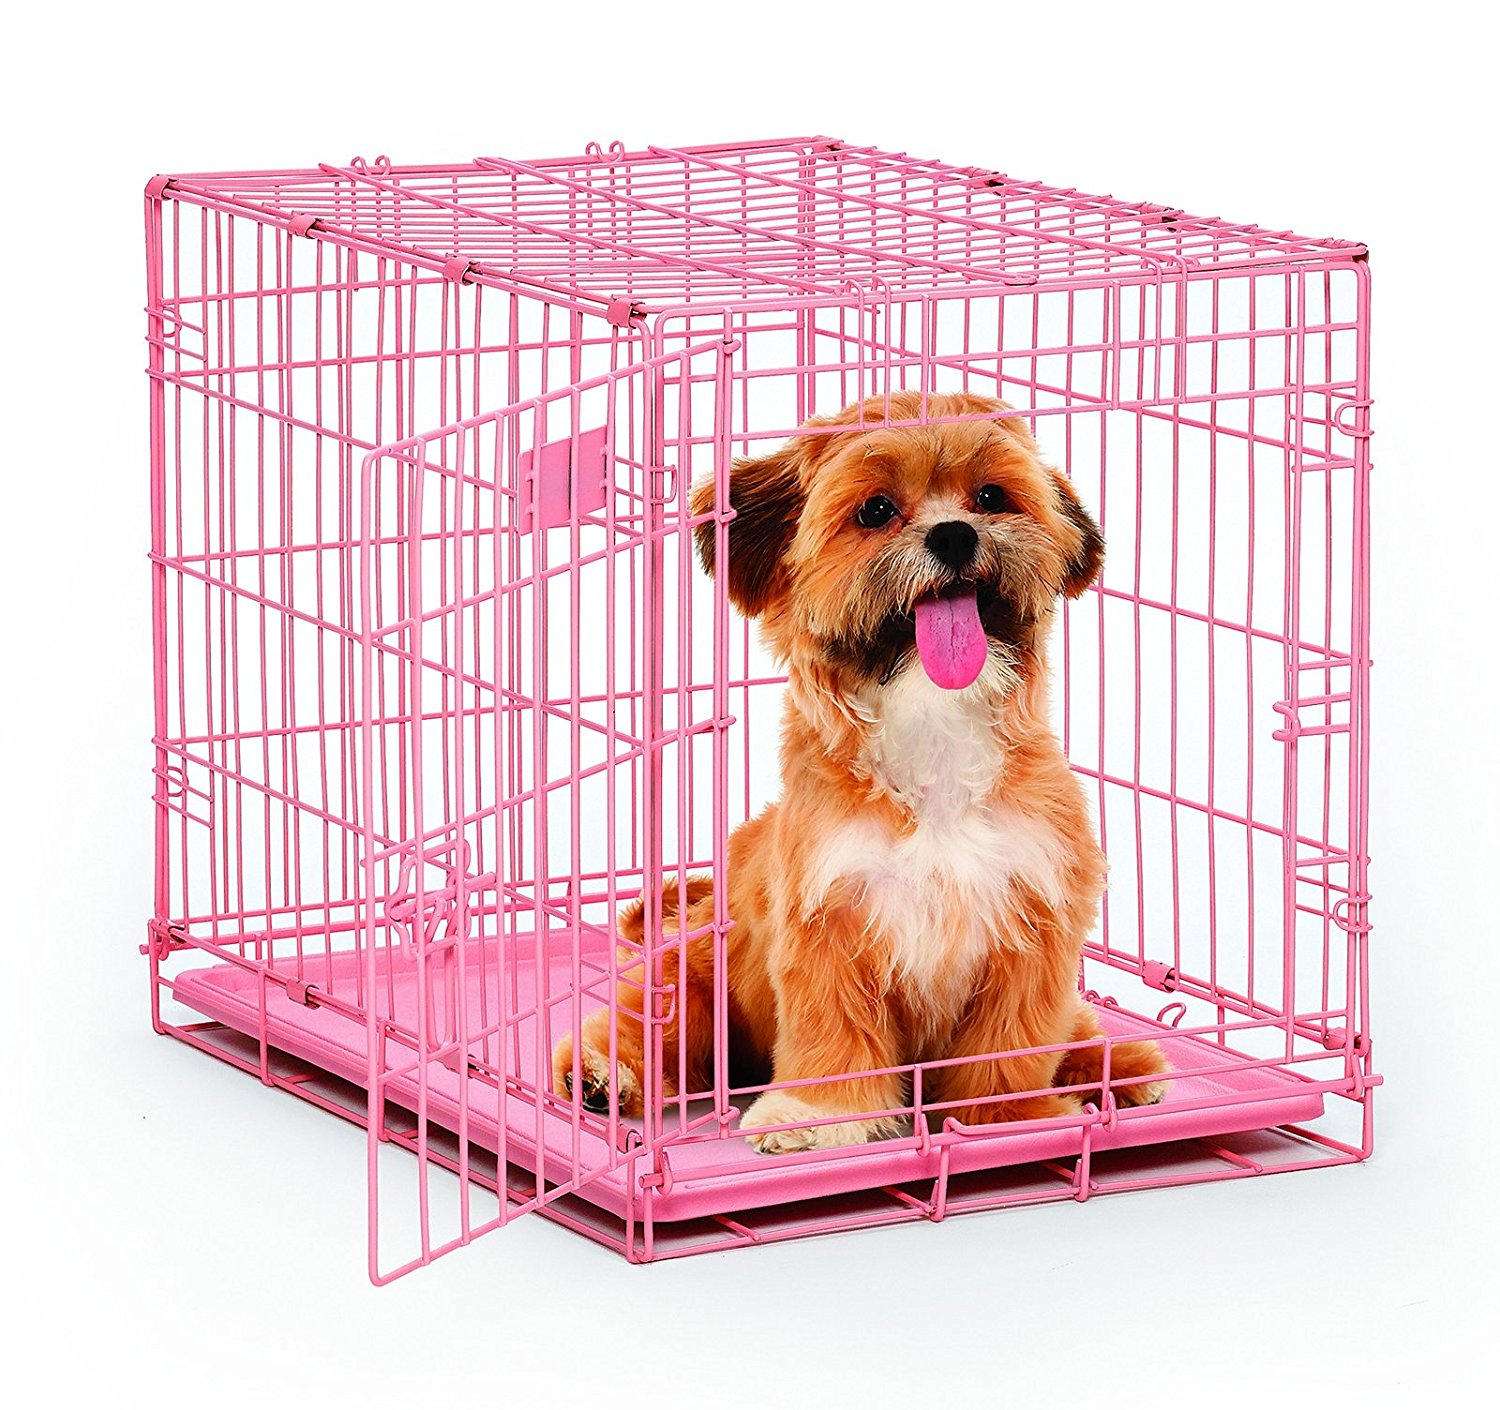 icrate folding metal dog crate by midwest homes for pets